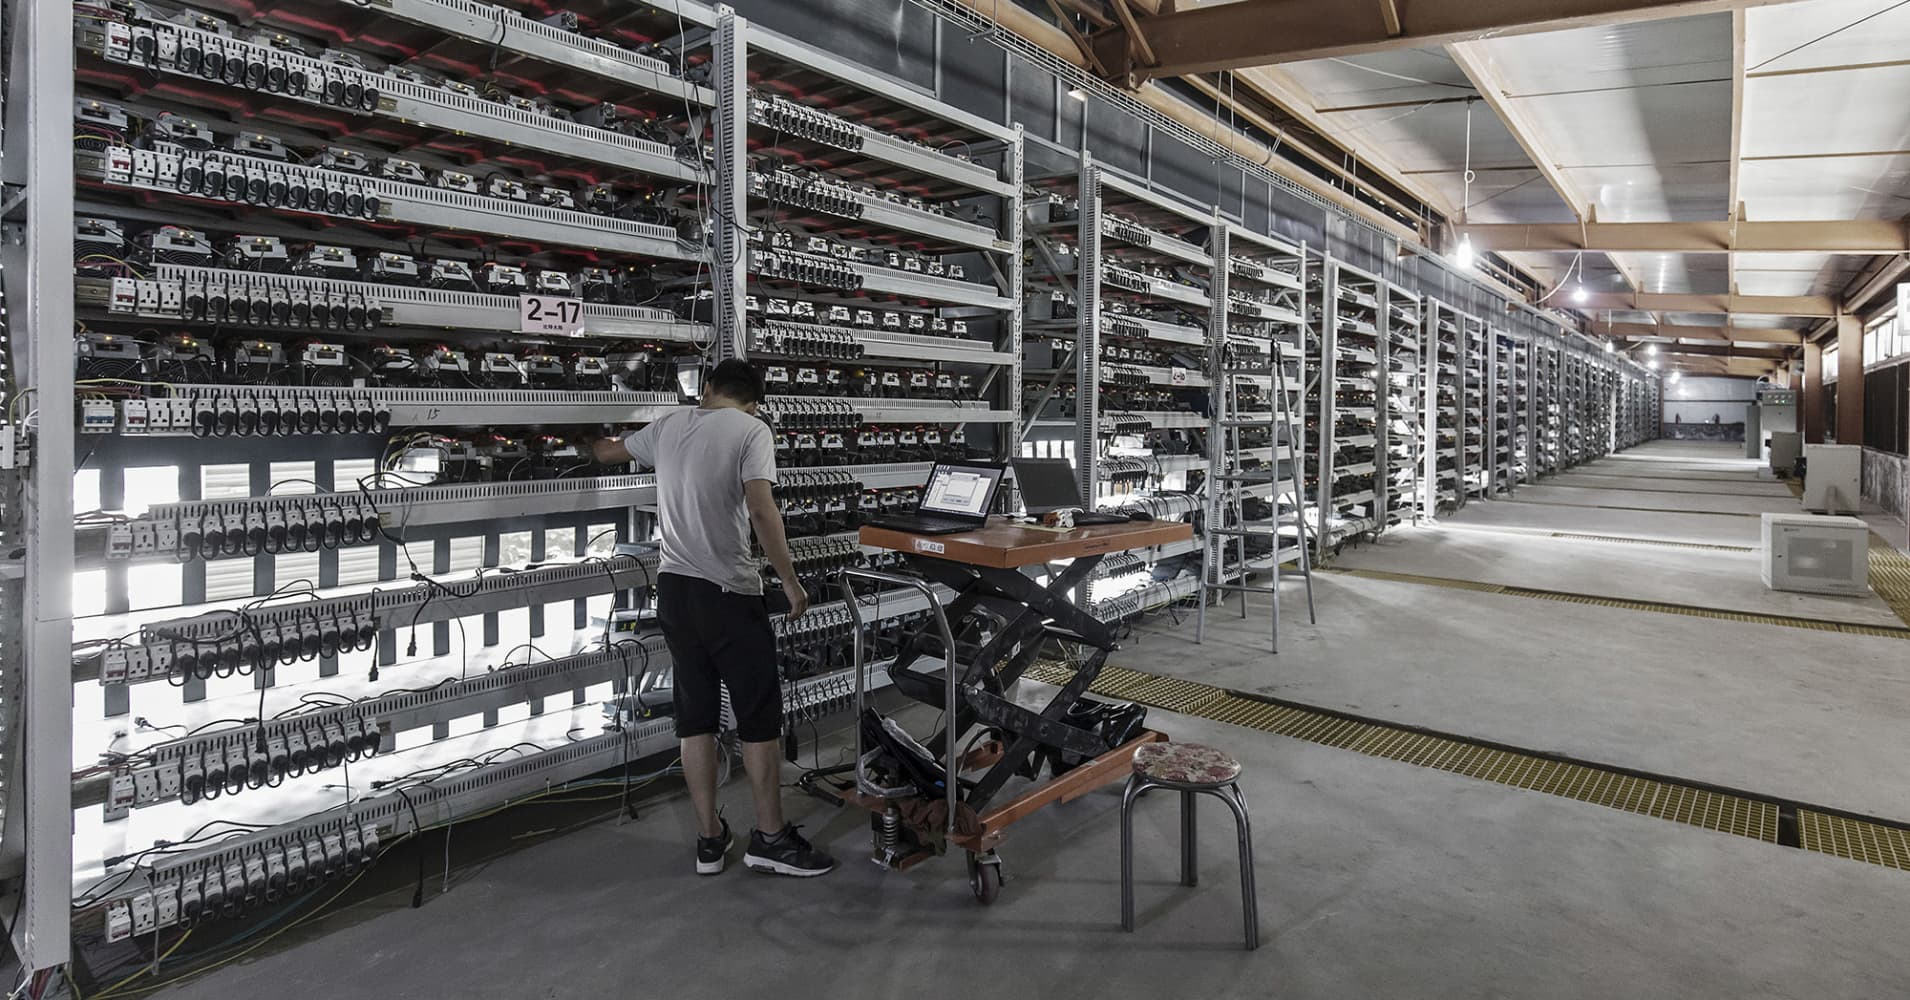 Bitcoin Blockchain Consumes A Lot Of Energy Engineers